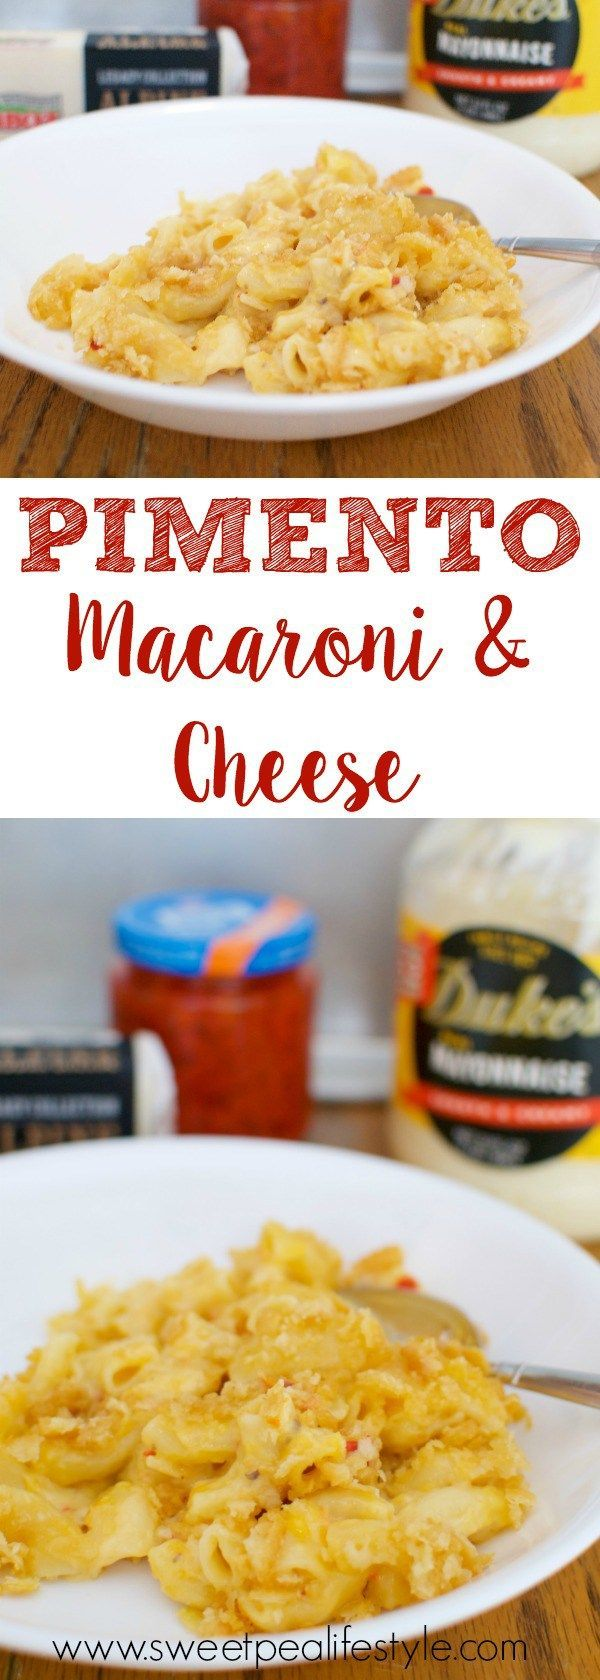 This is the ultimate Macaroni and cheese recipe! Combining pantry staples, you'll have a southern vegetable in under an hour. This freezes well for make ahead meals, too!